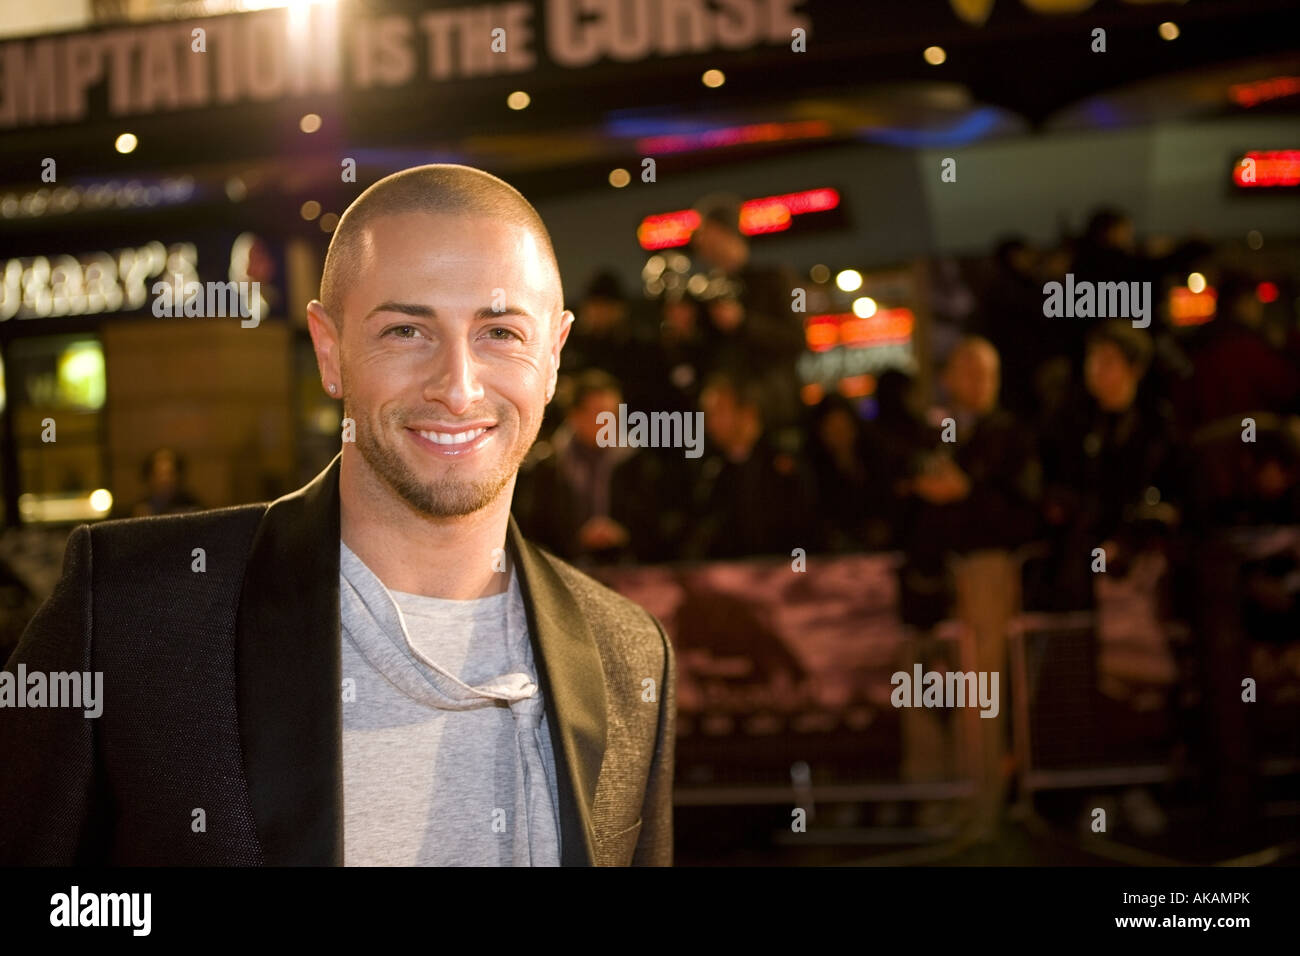 brian friedman celeb guest at beo wulf film premiere european leicester square london x factor - Stock Image